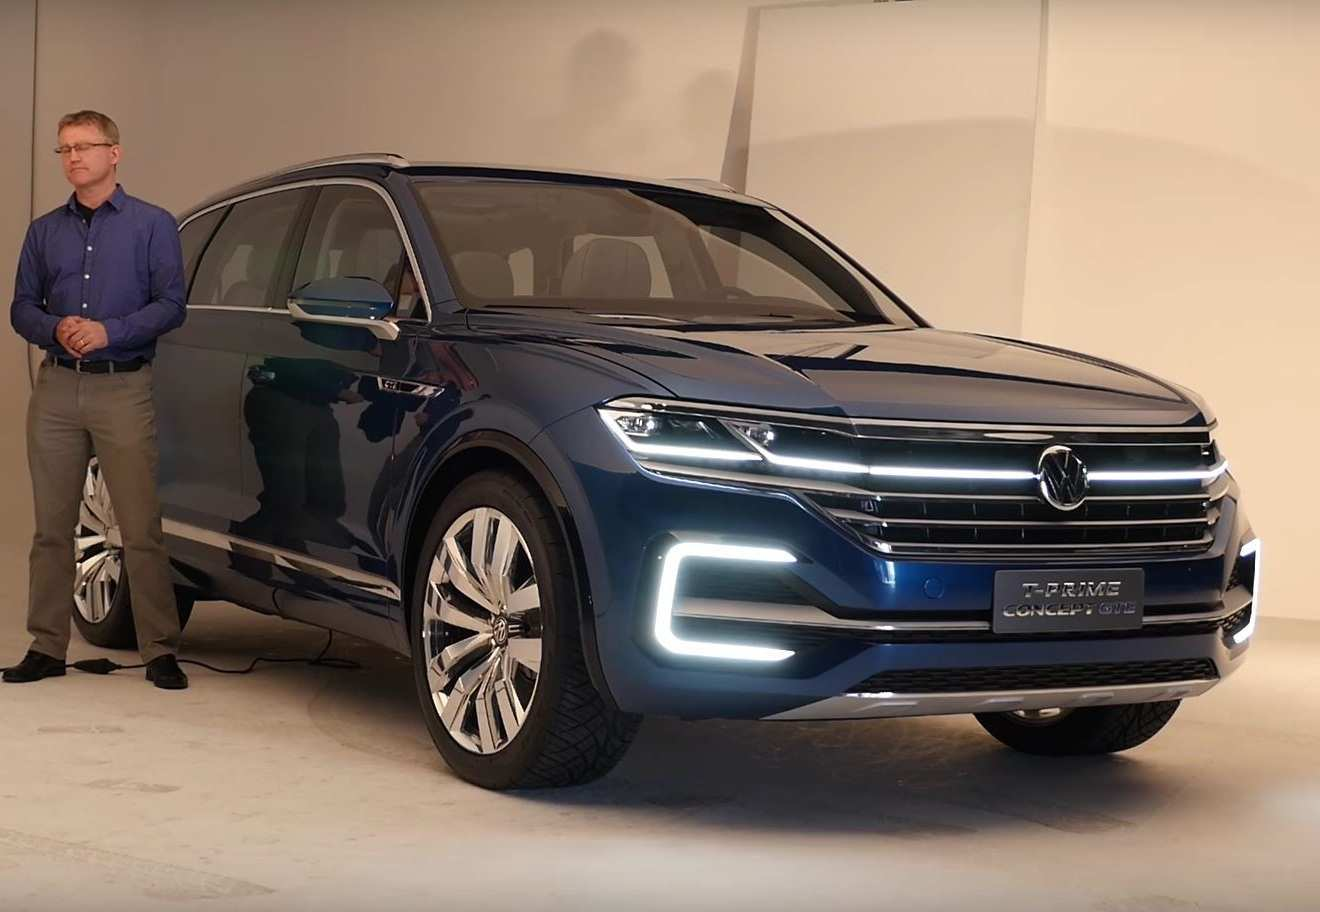 31 Gallery of Volkswagen 2020 Touareg Exterior Style for Volkswagen 2020 Touareg Exterior